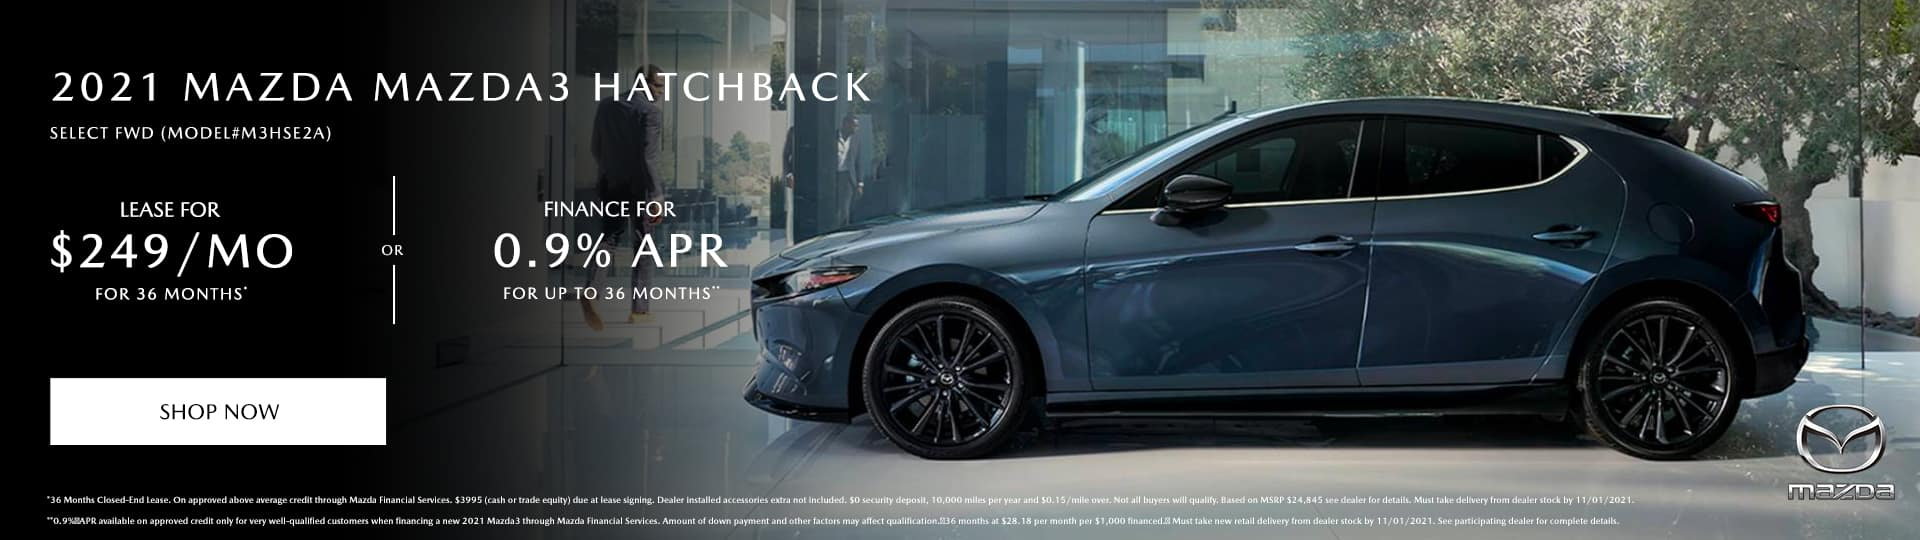 2021 MAZDA MAZDA3 HATCHBACK SELECT FWD (MODEL#M3HSE2A), $249/month @ 36 months* OR 0.9% APR for up to 36 Months**